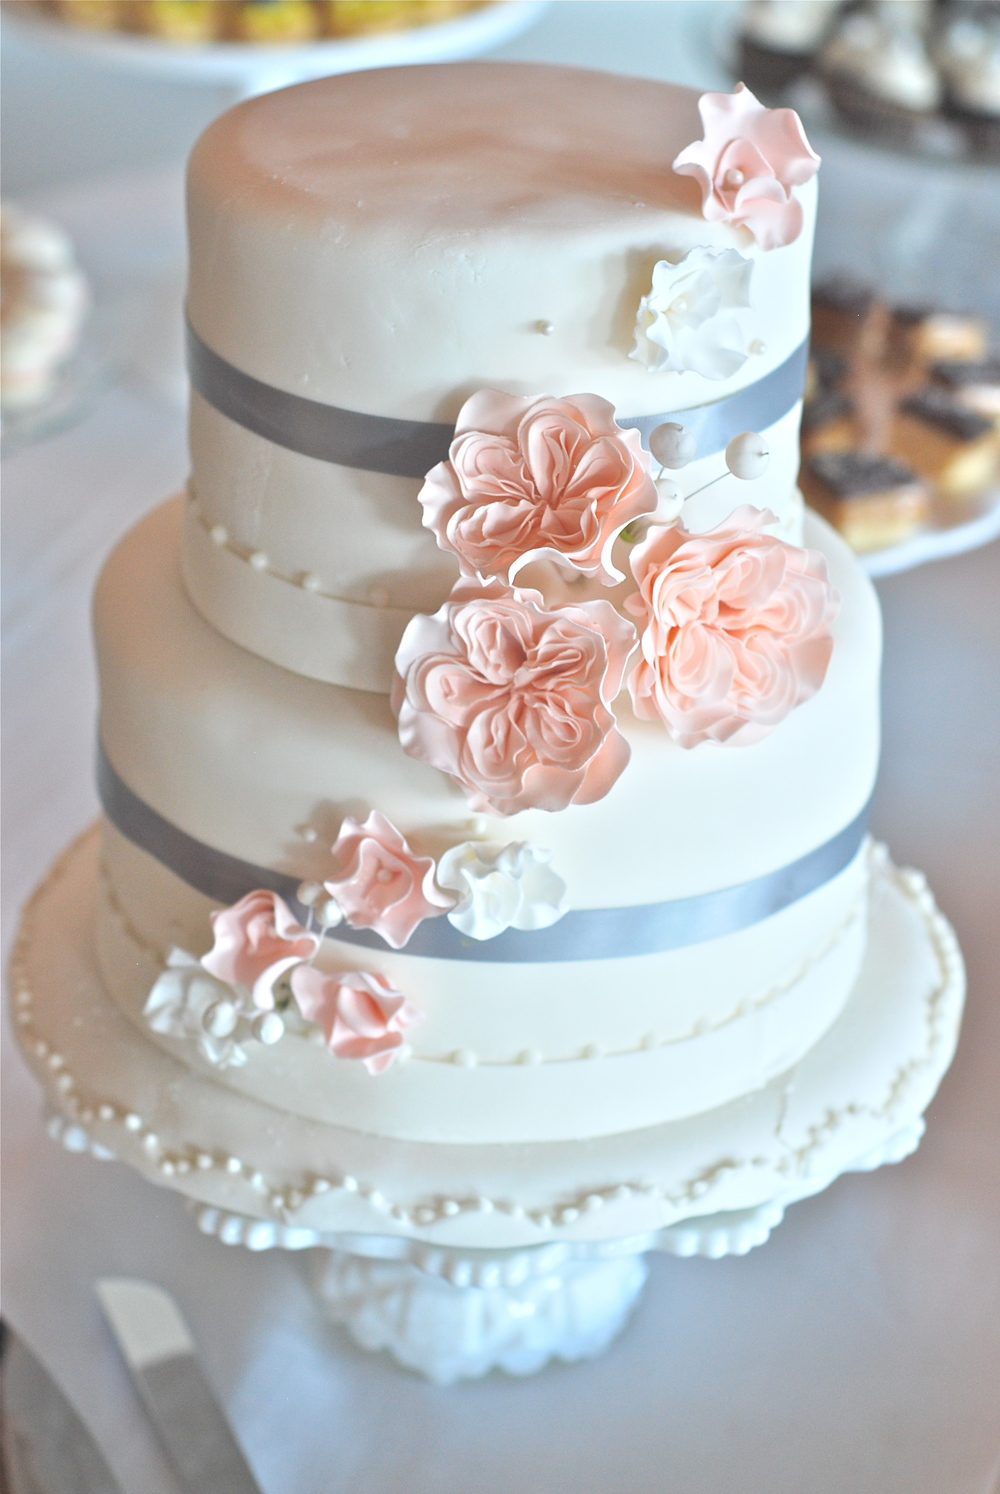 Two-tier fondant covered carrot cake, decorated with handmade sugar flowers.